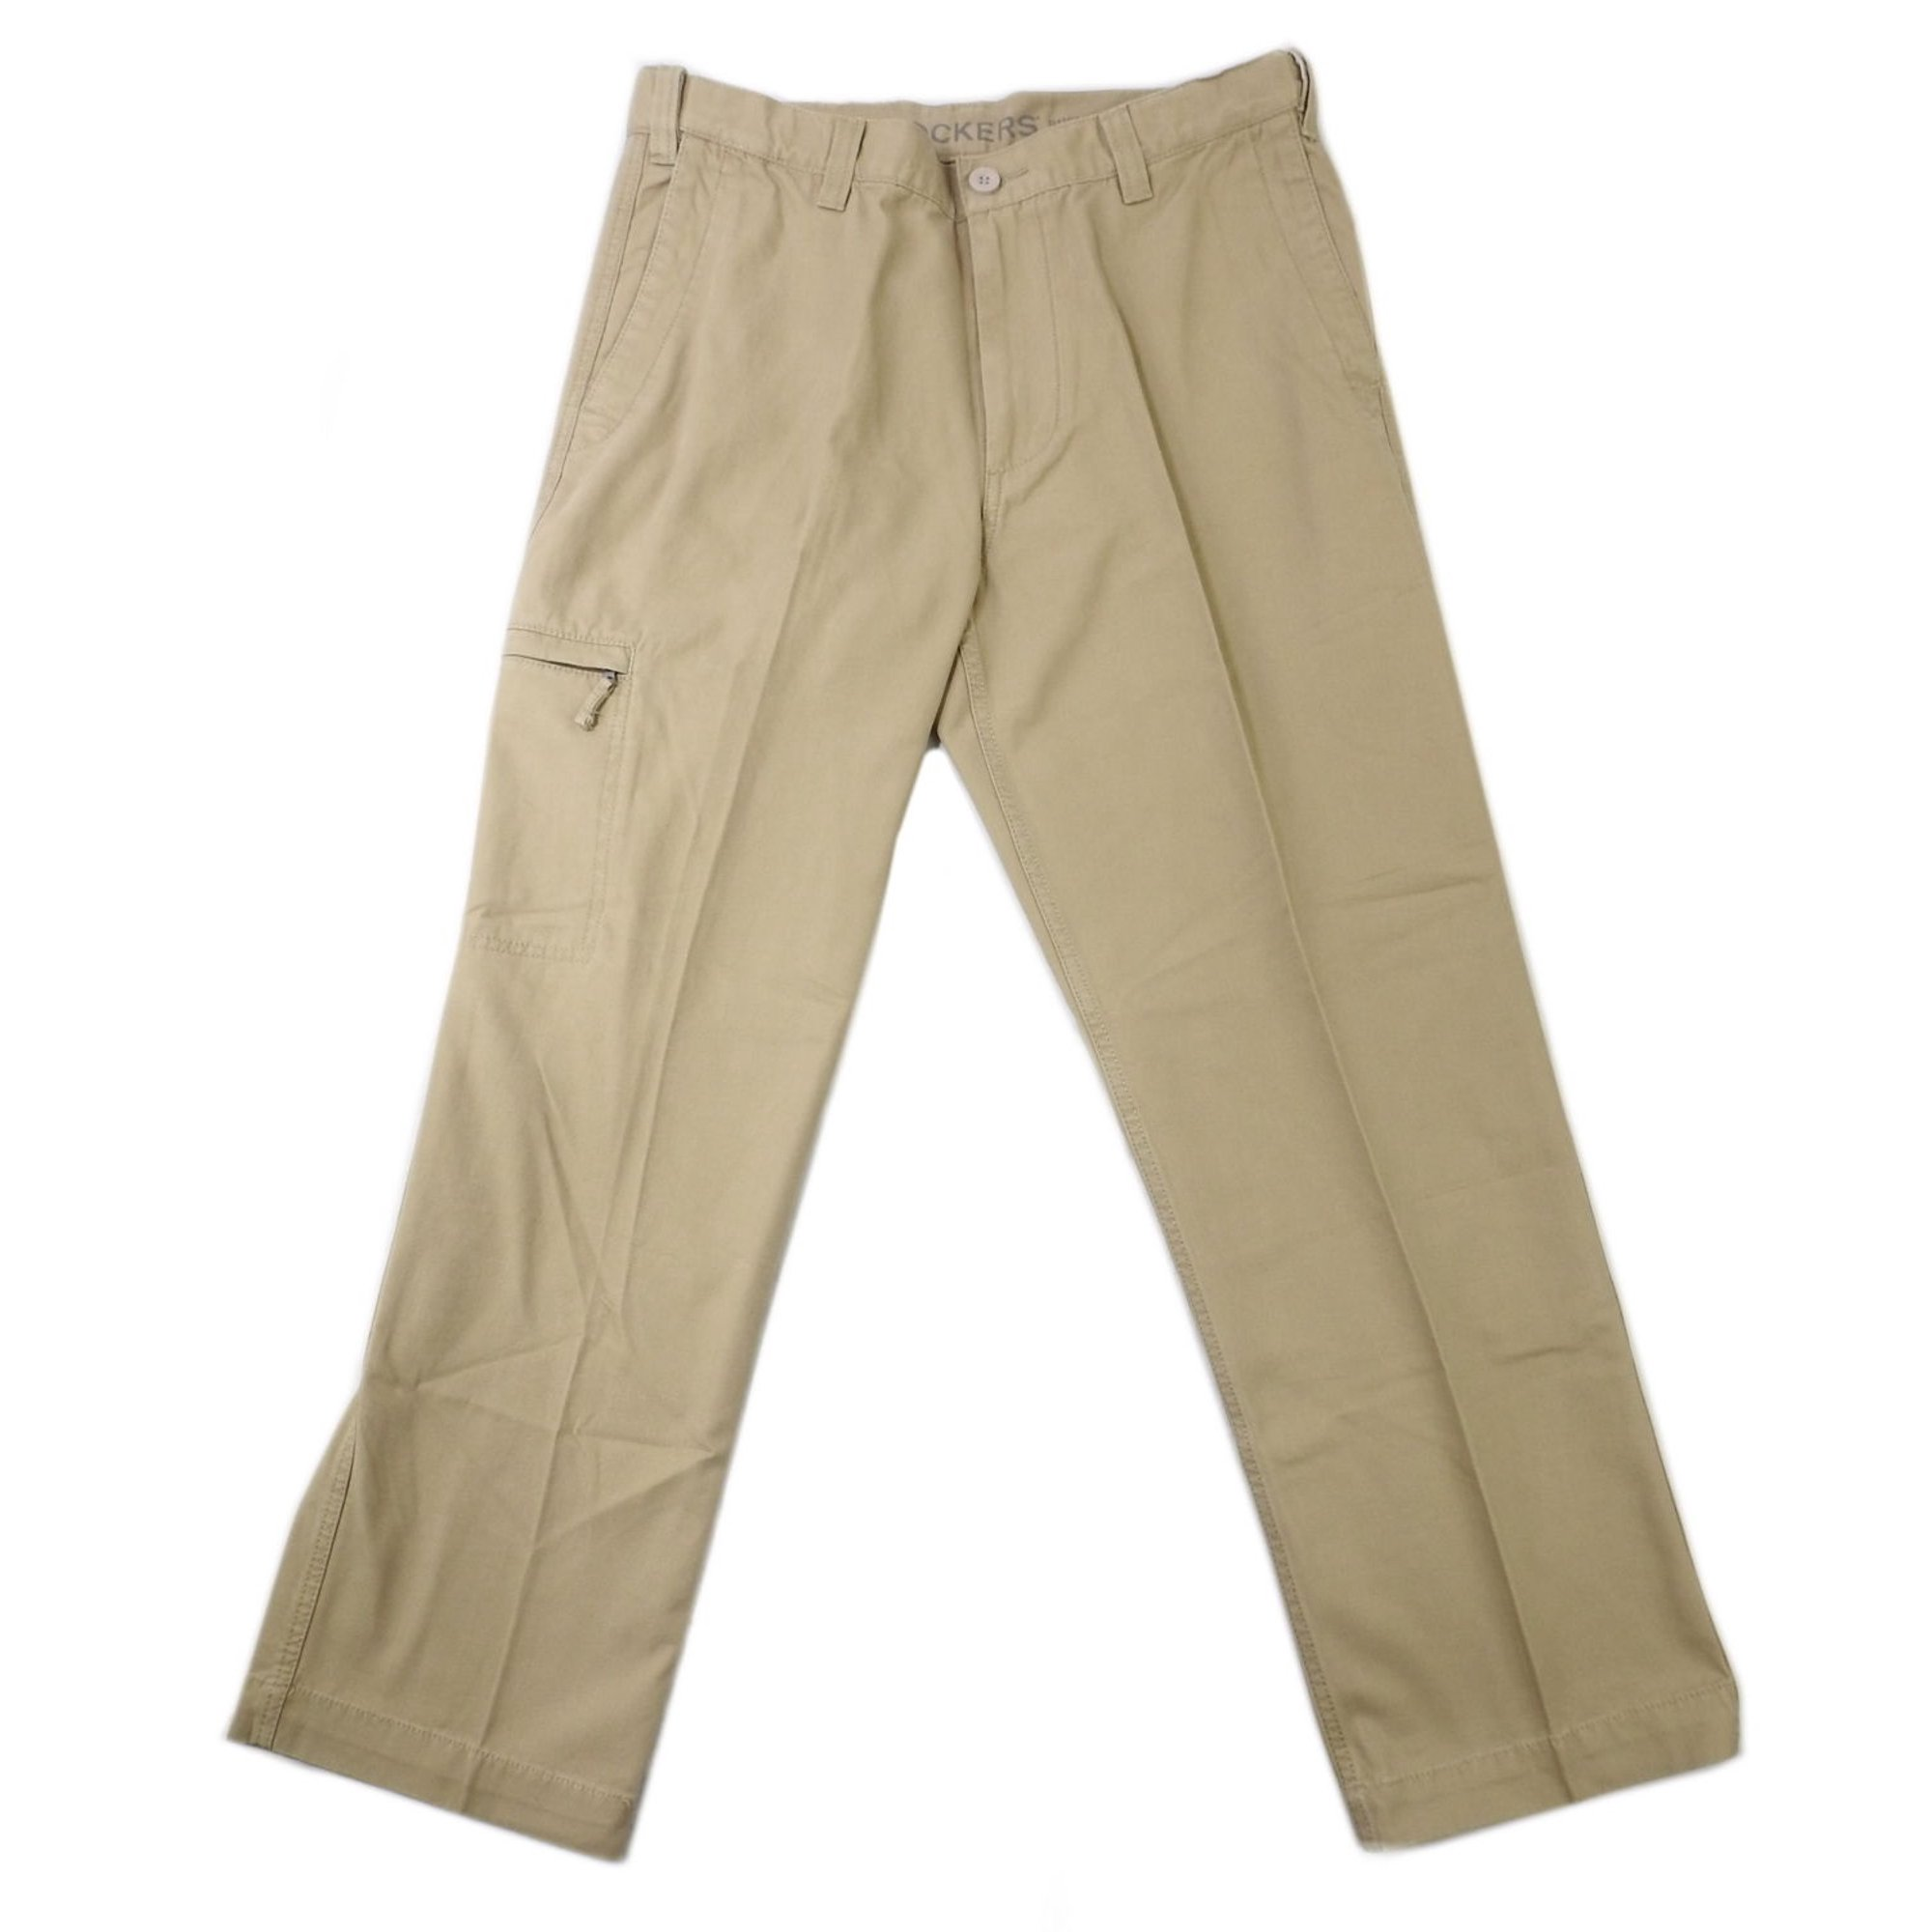 6f40f86f6fc Buy Dockers Mens Size 40 x 30 Classic Fit Comfort Cargo Pants